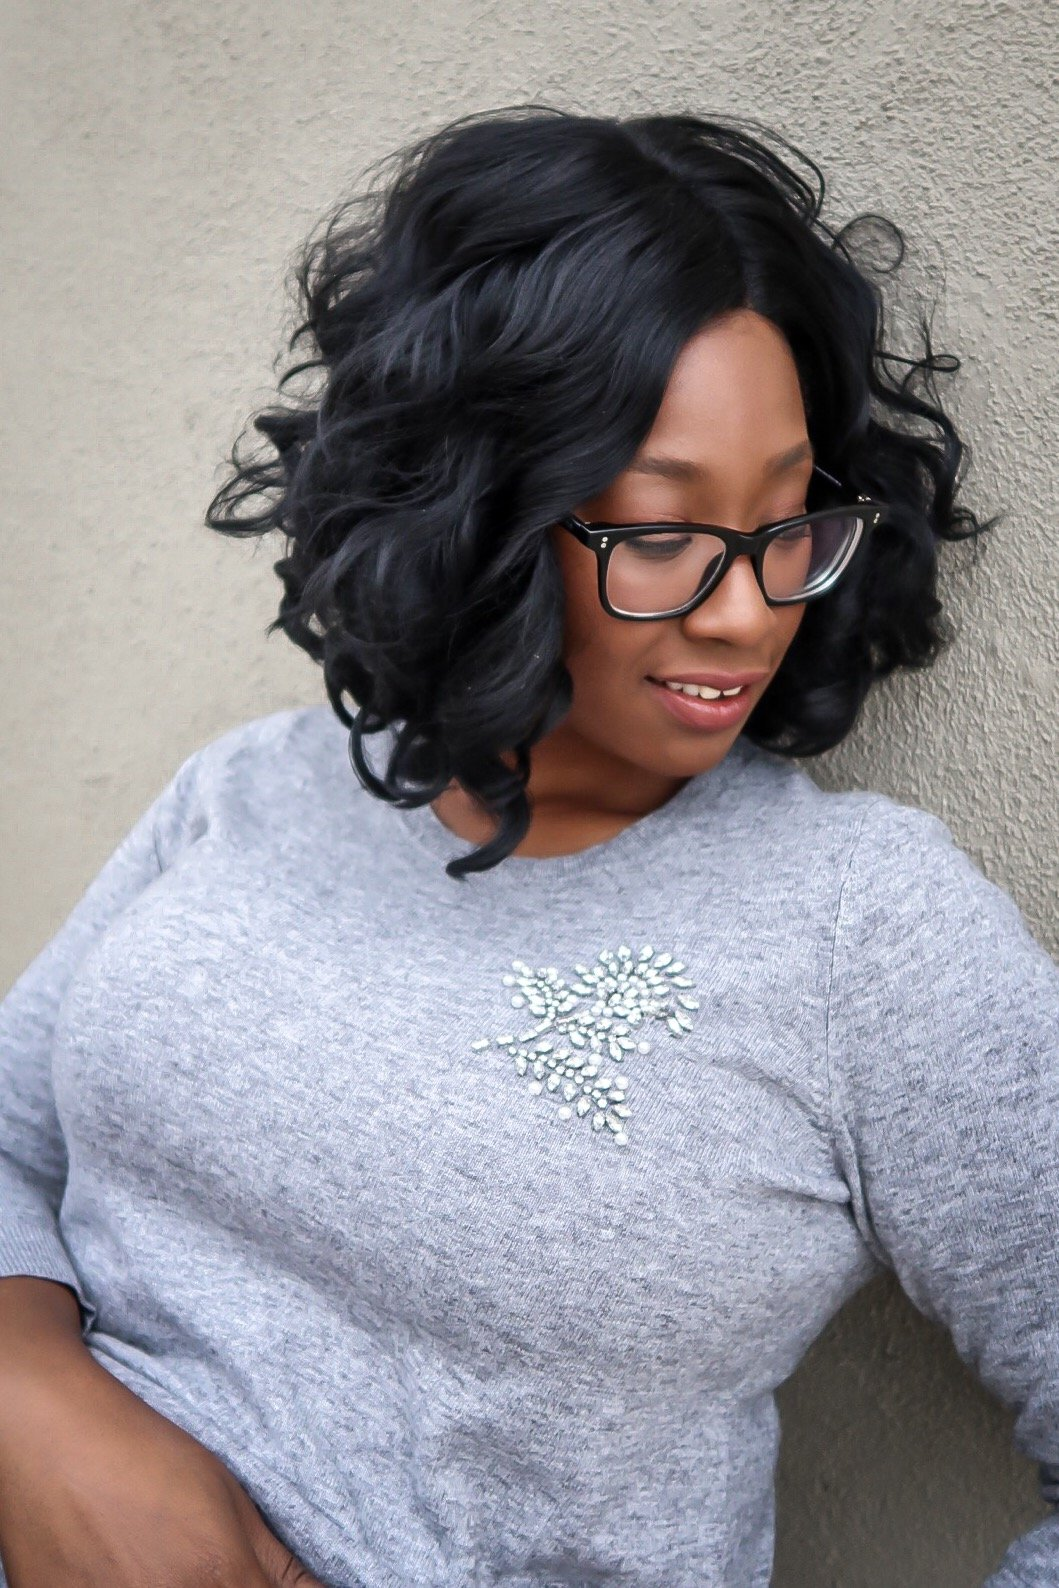 Heather Gray embellished sweater from The Loft If you're like many, you probably haven't started your holiday shopping. Stores shelves are about to be bare and crowds are everywhere but don't stress. Here are 5 Simple Tips For Surviving Last Minute Holiday Shopping.